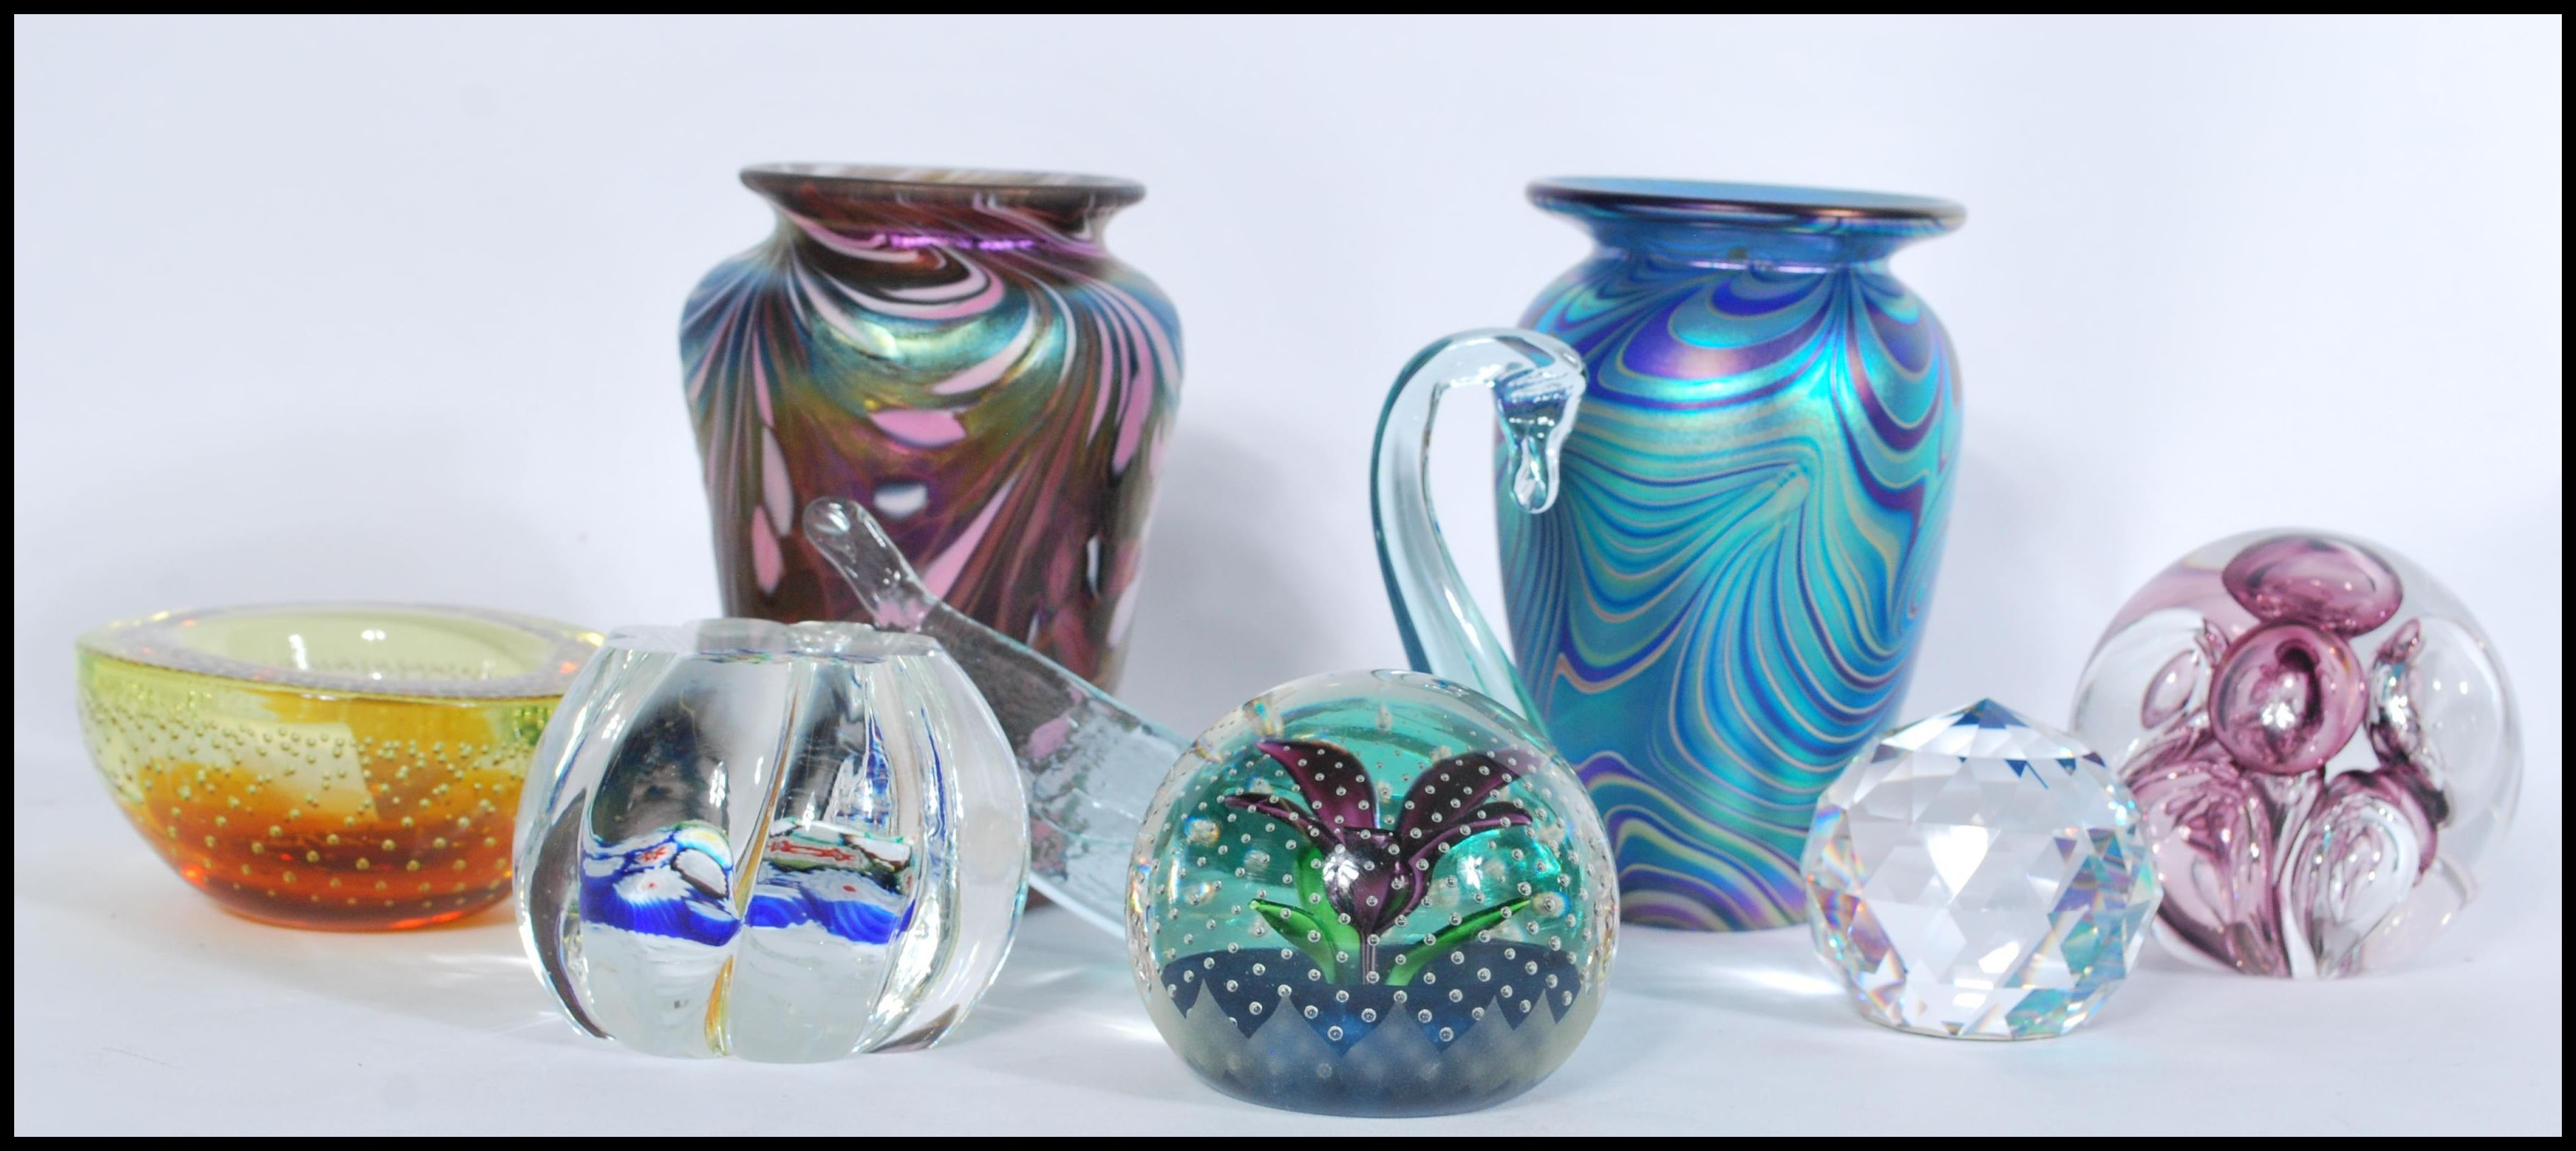 Lot 41 - A collection of studio glass items to include a Studio glass vase by Okra, marbling effect to a blue